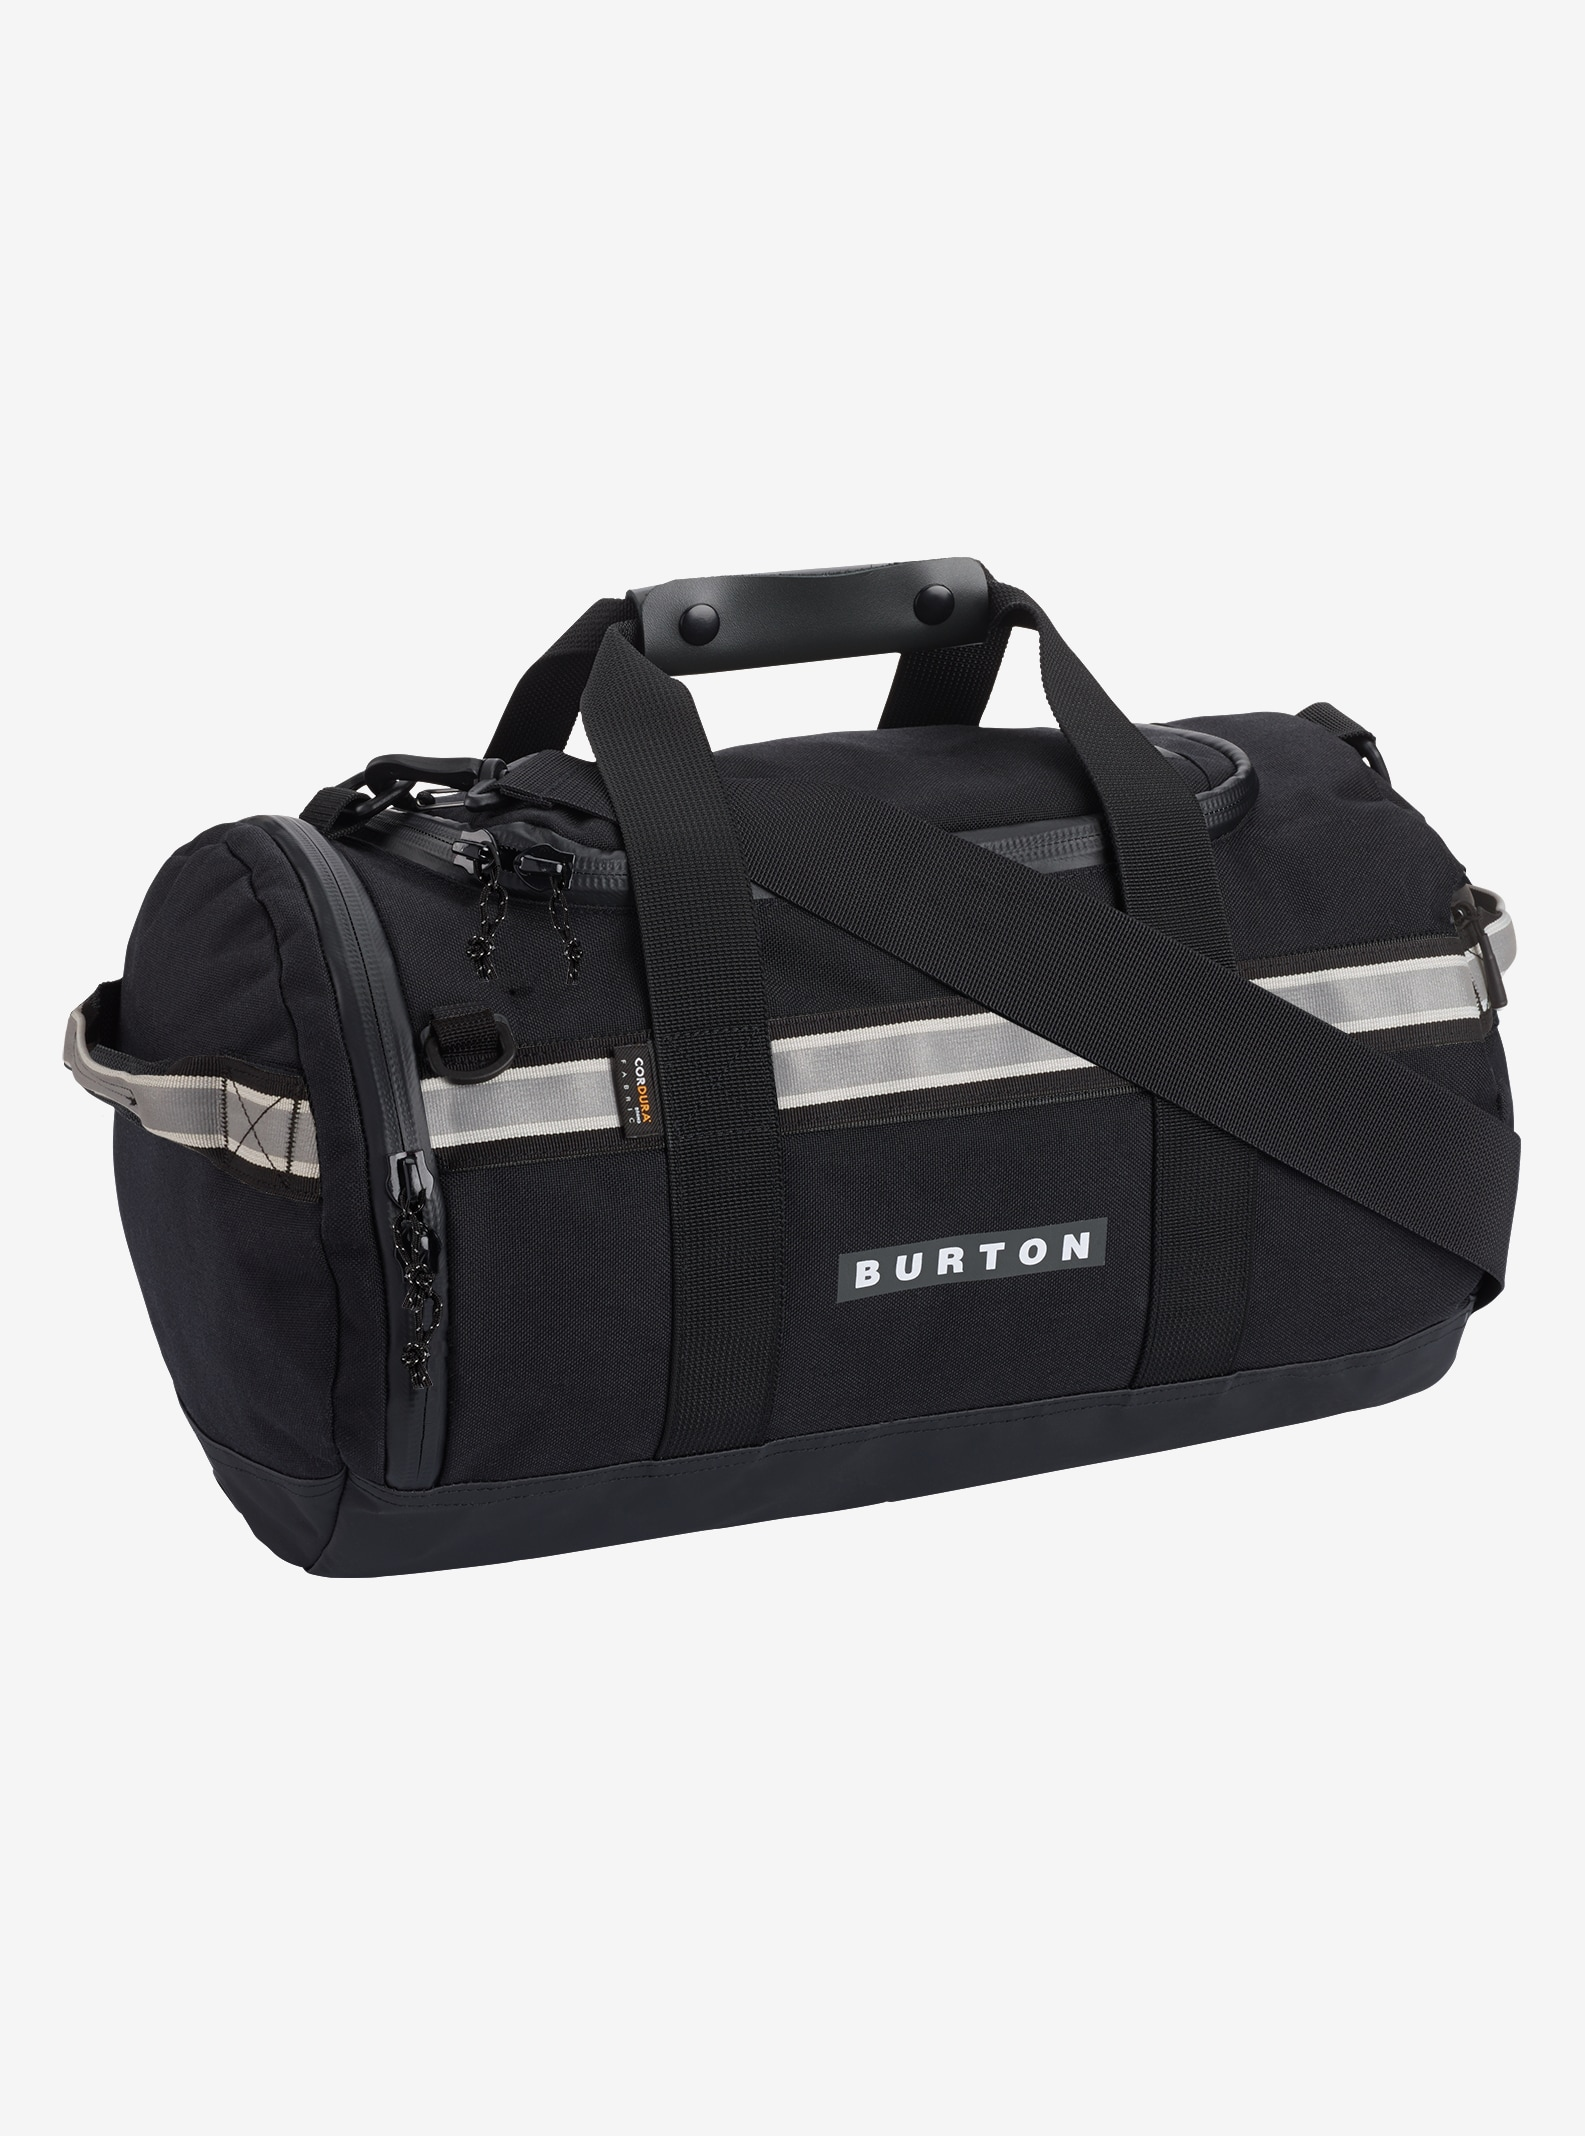 Burton Backhill Duffel Bag X-Small 25L angezeigt in True Black Cordura®